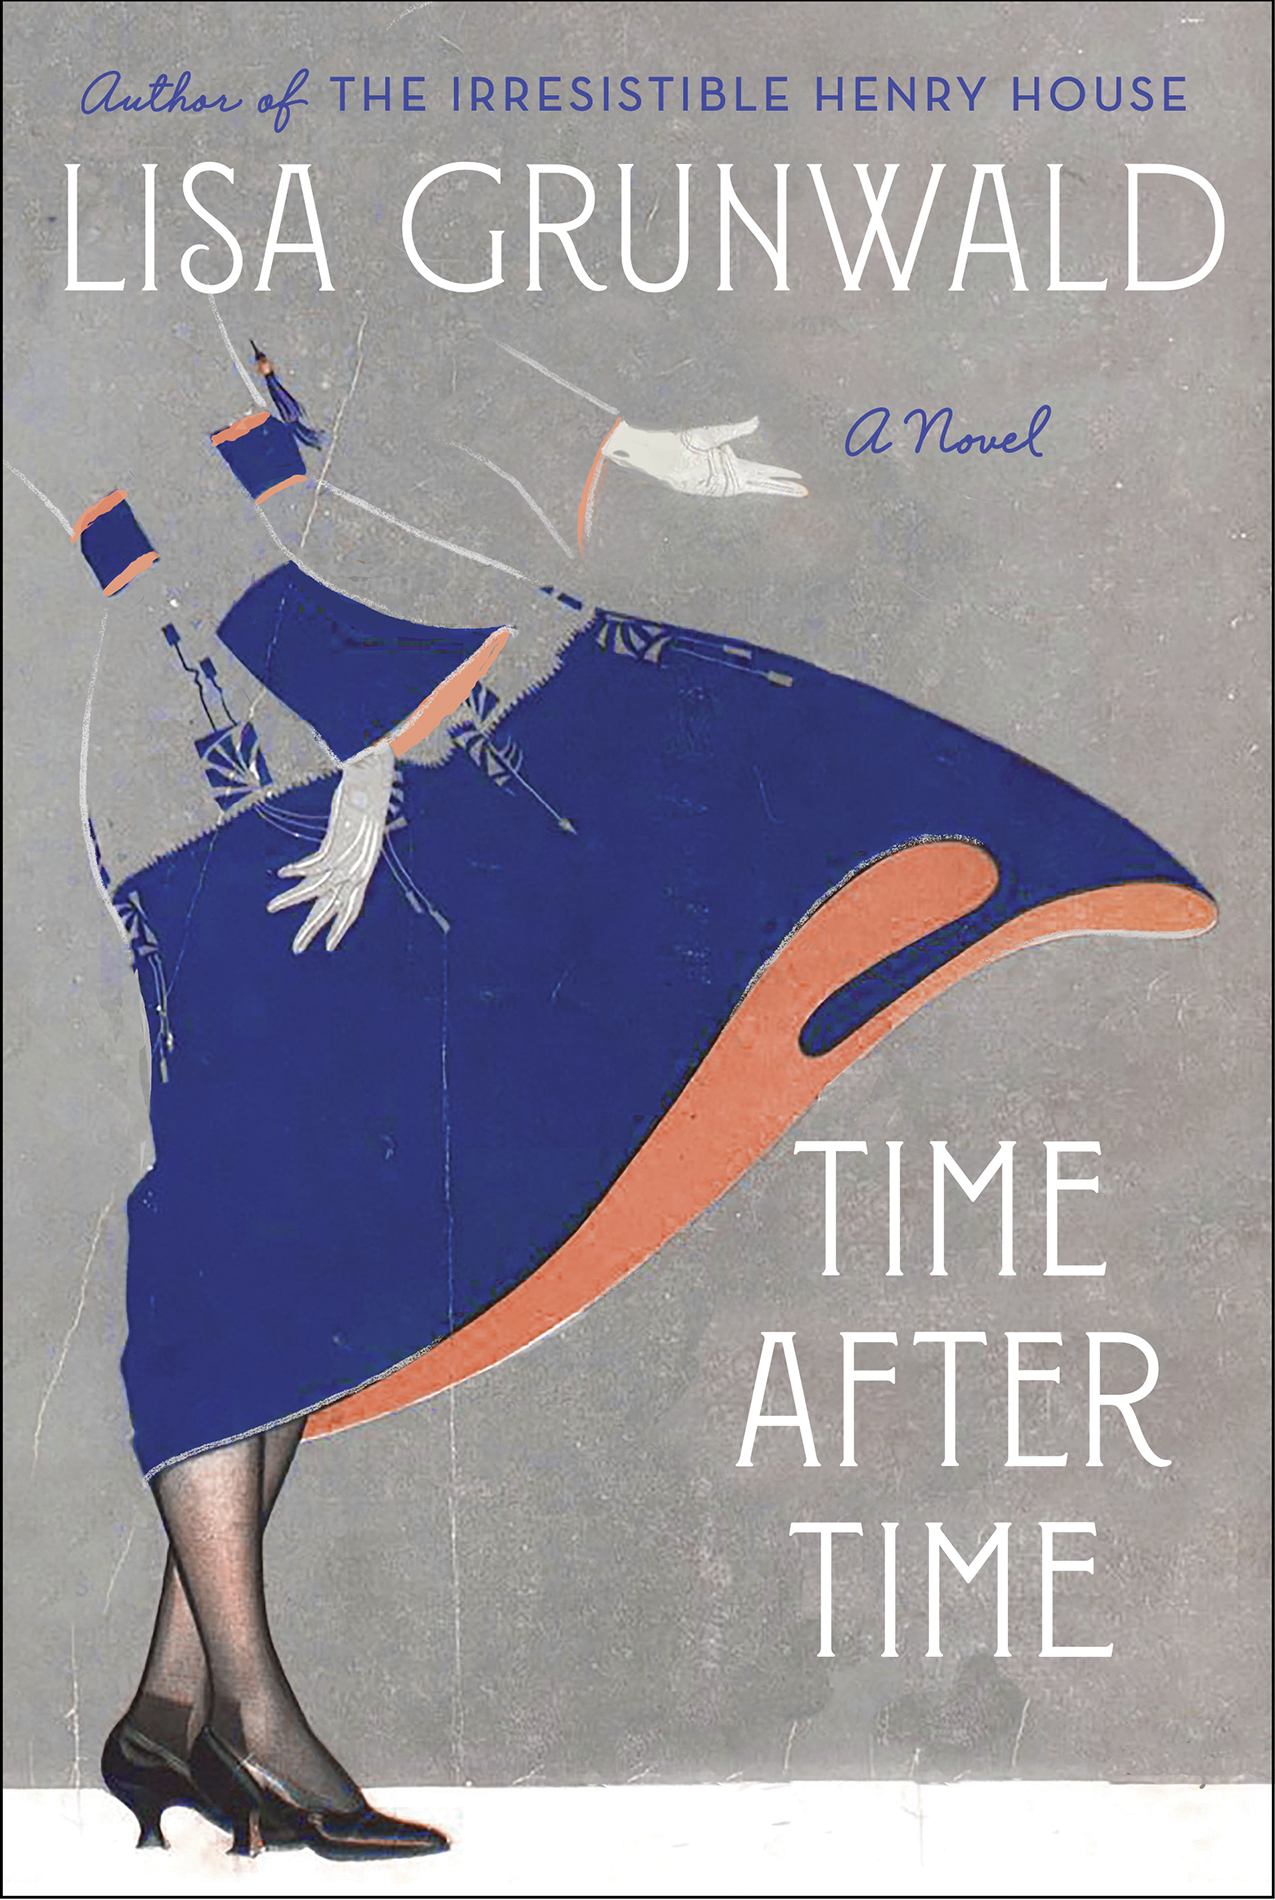 Time After Time  by Lisa Grunwald  Random House —- June 18, 2019